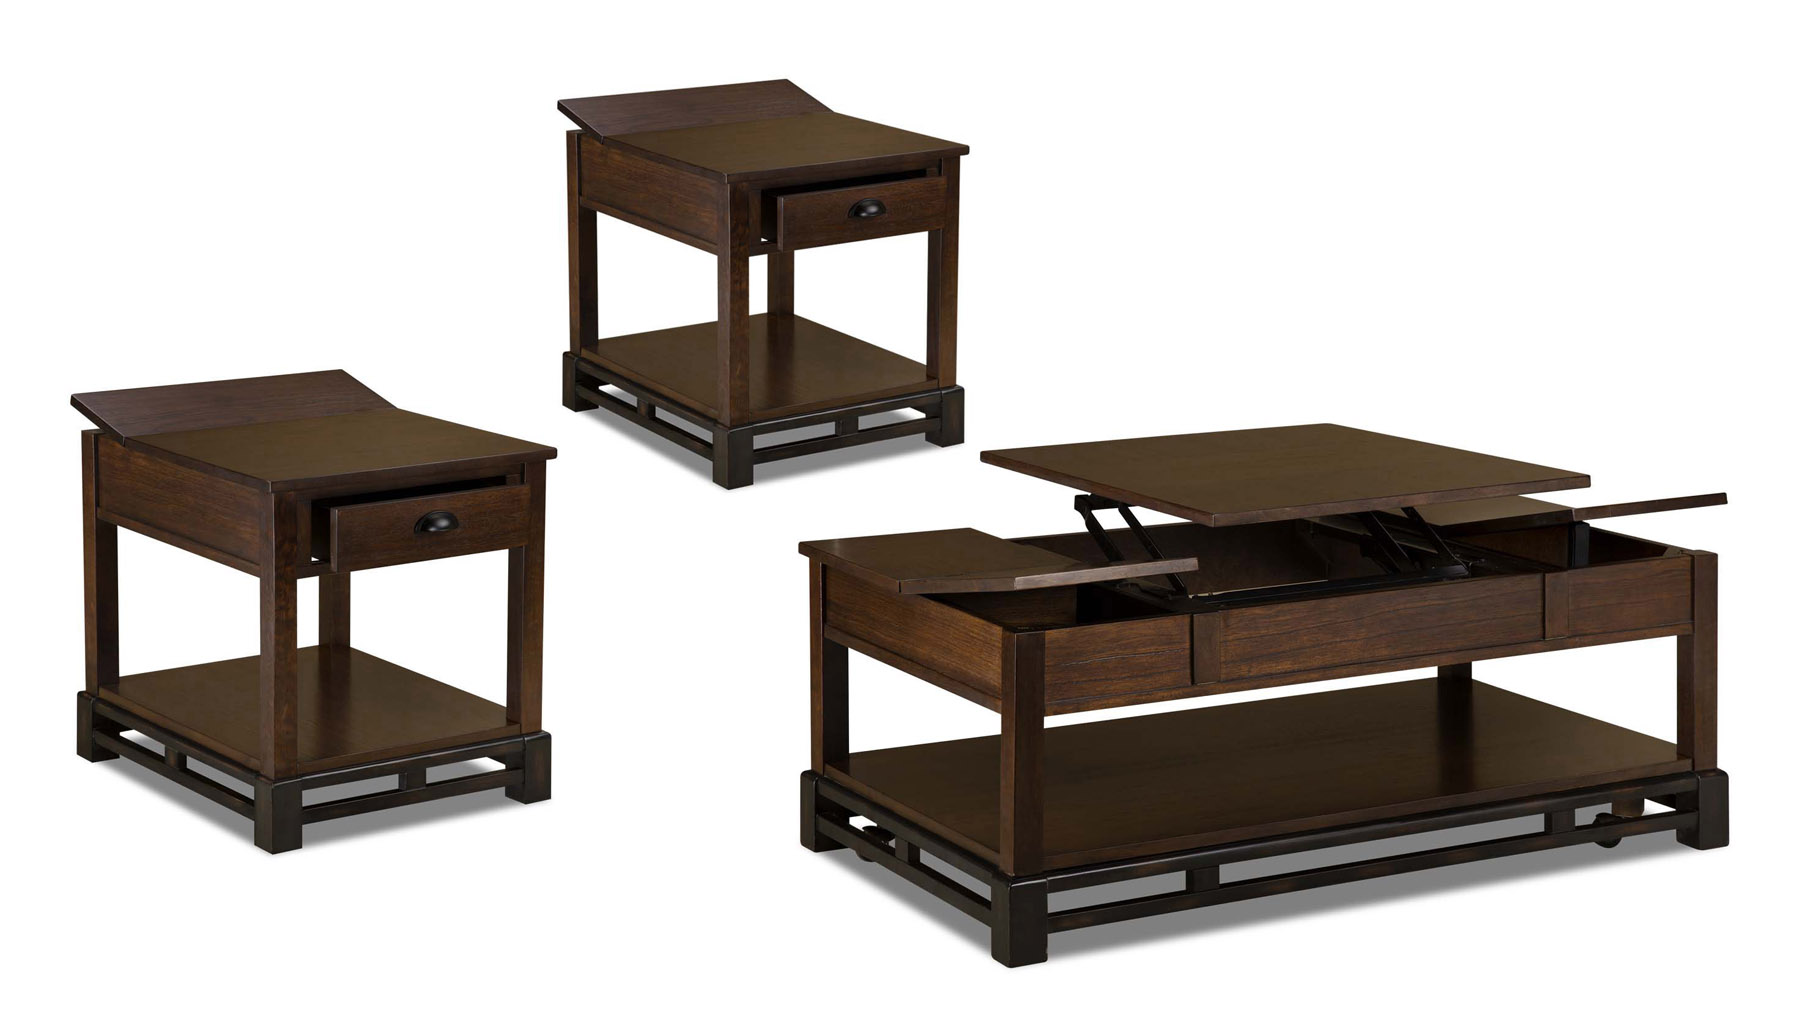 Catnapper Lift Top Storage Coffee Table and 2 End Tables 870-049/055x2 ...